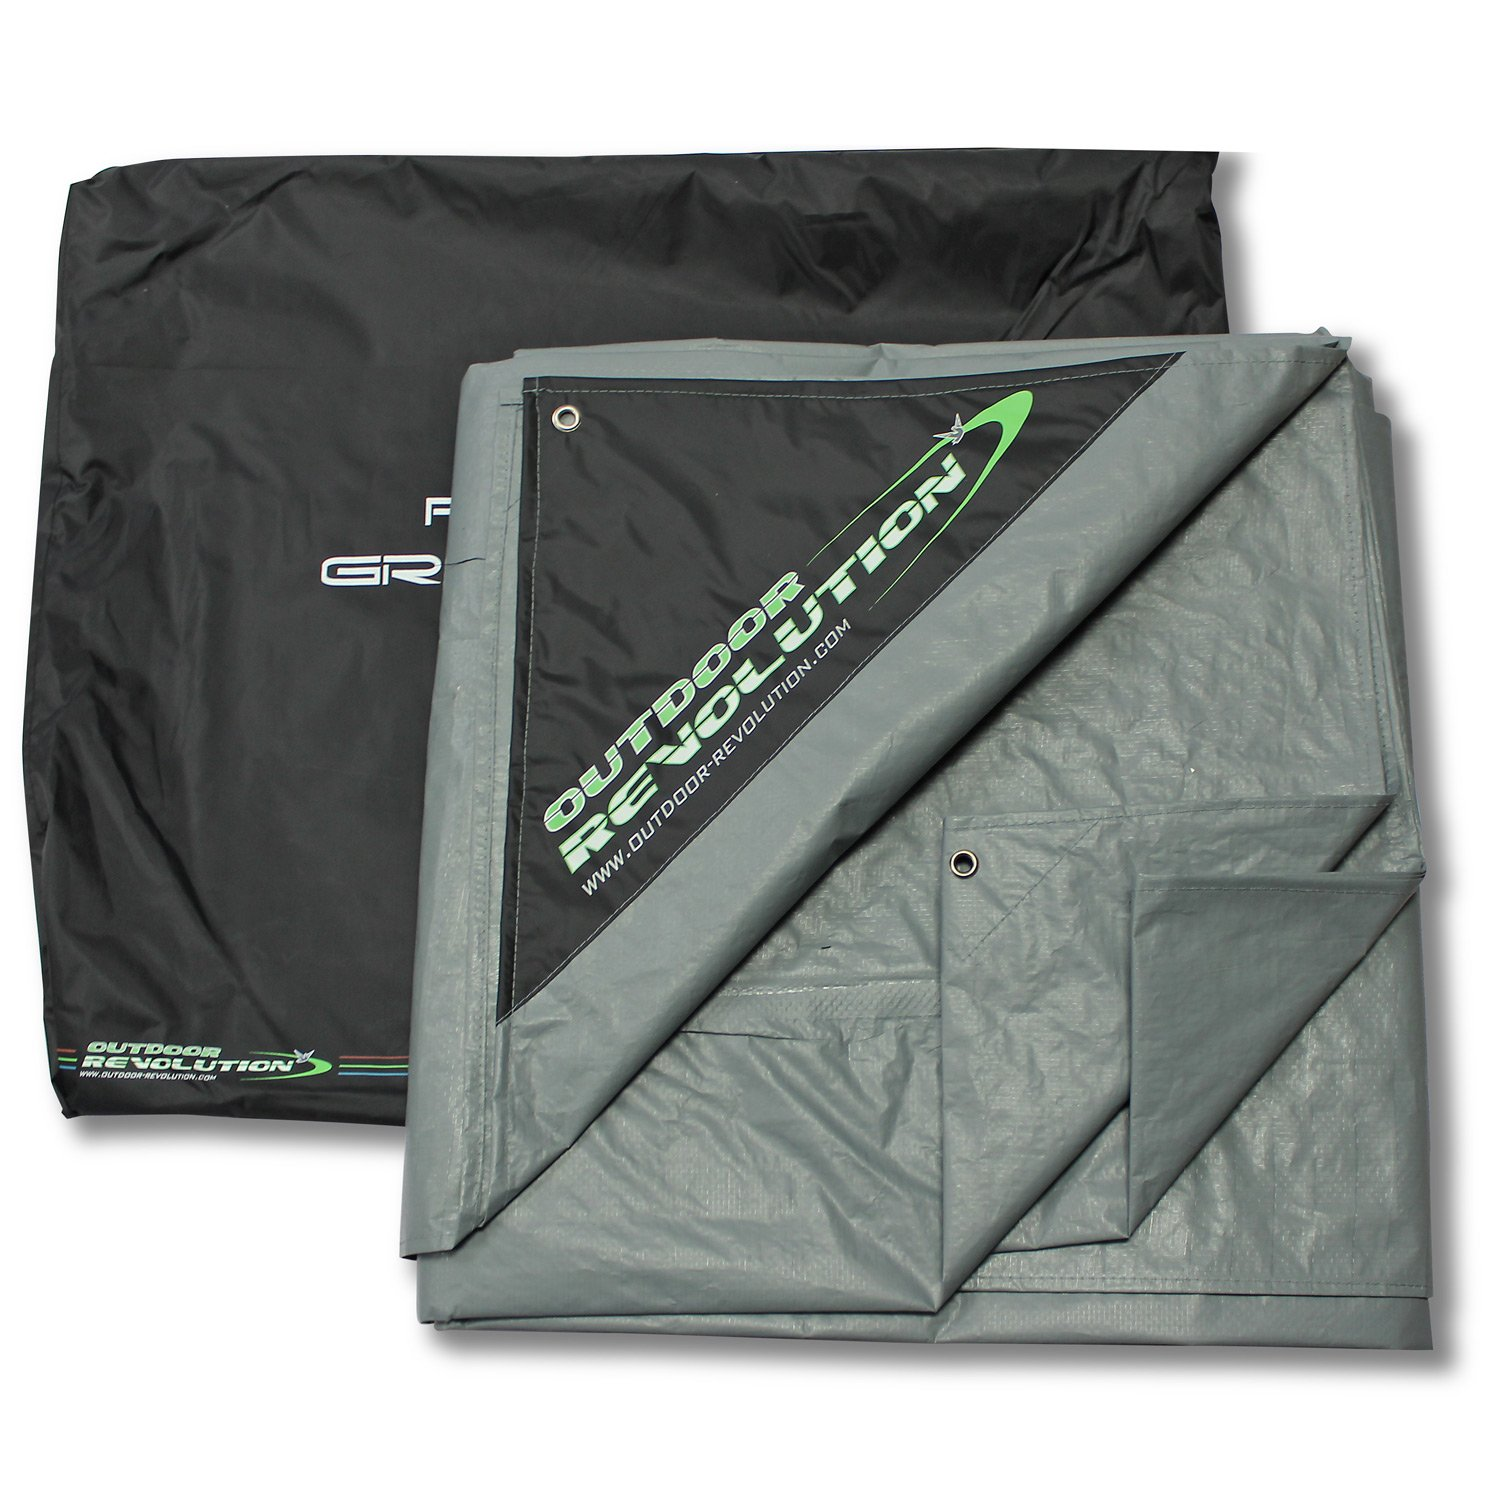 Outdoor Revolution Cayman Footprint Groundsheet